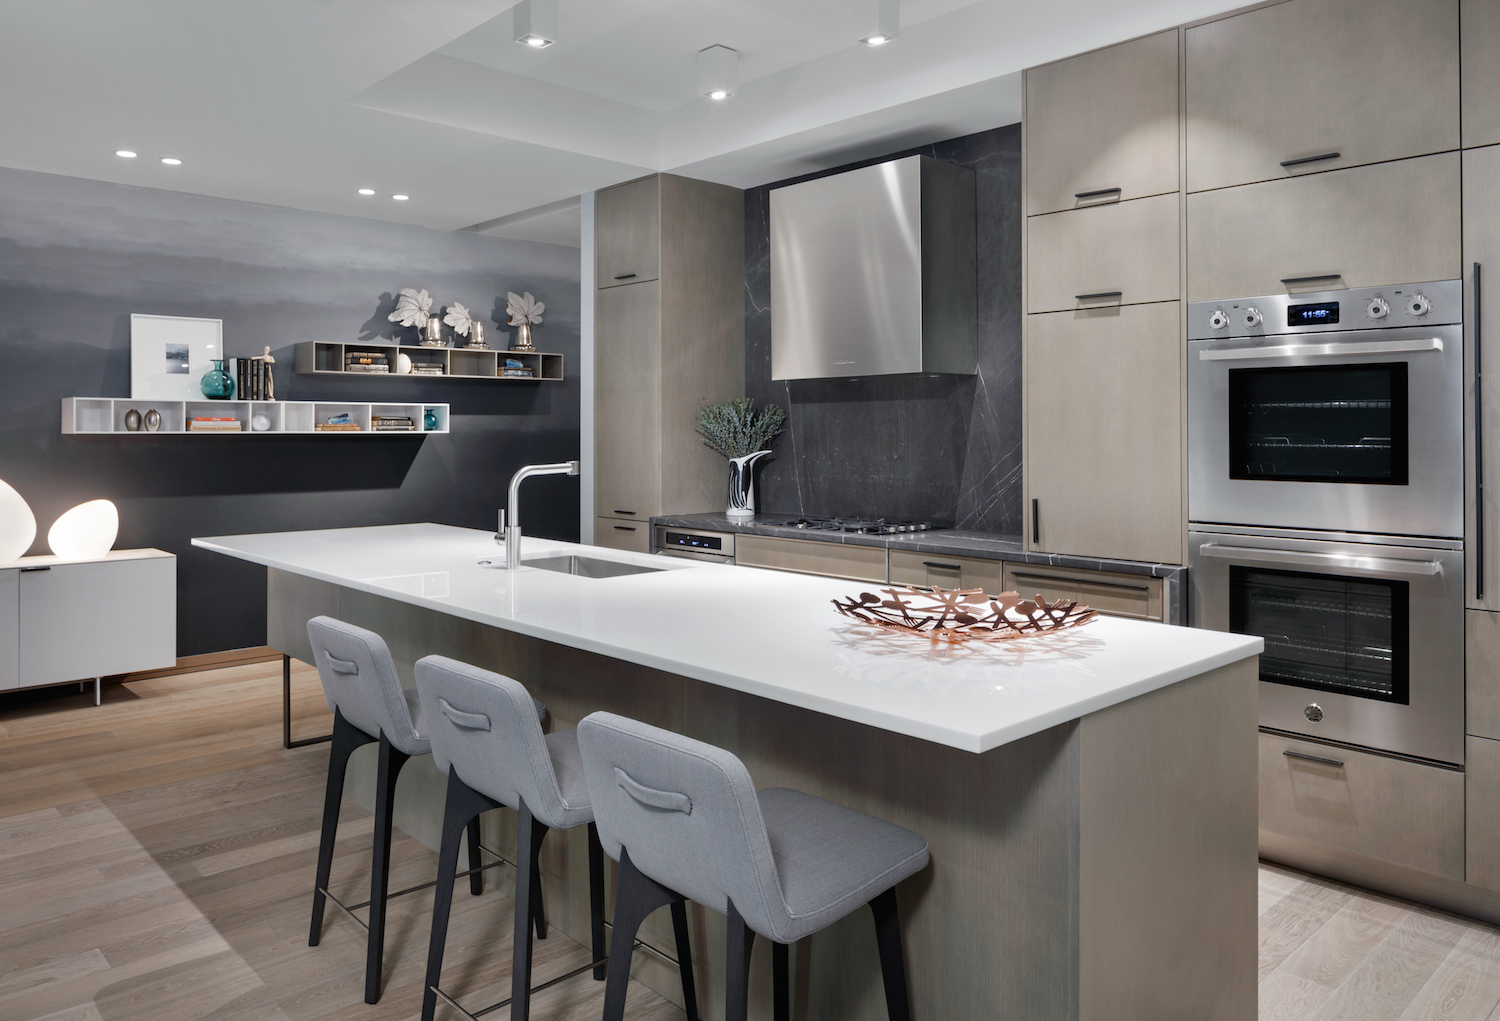 Model unit kitchen at 90 Lexington Avenue. photo via HFZ Capital